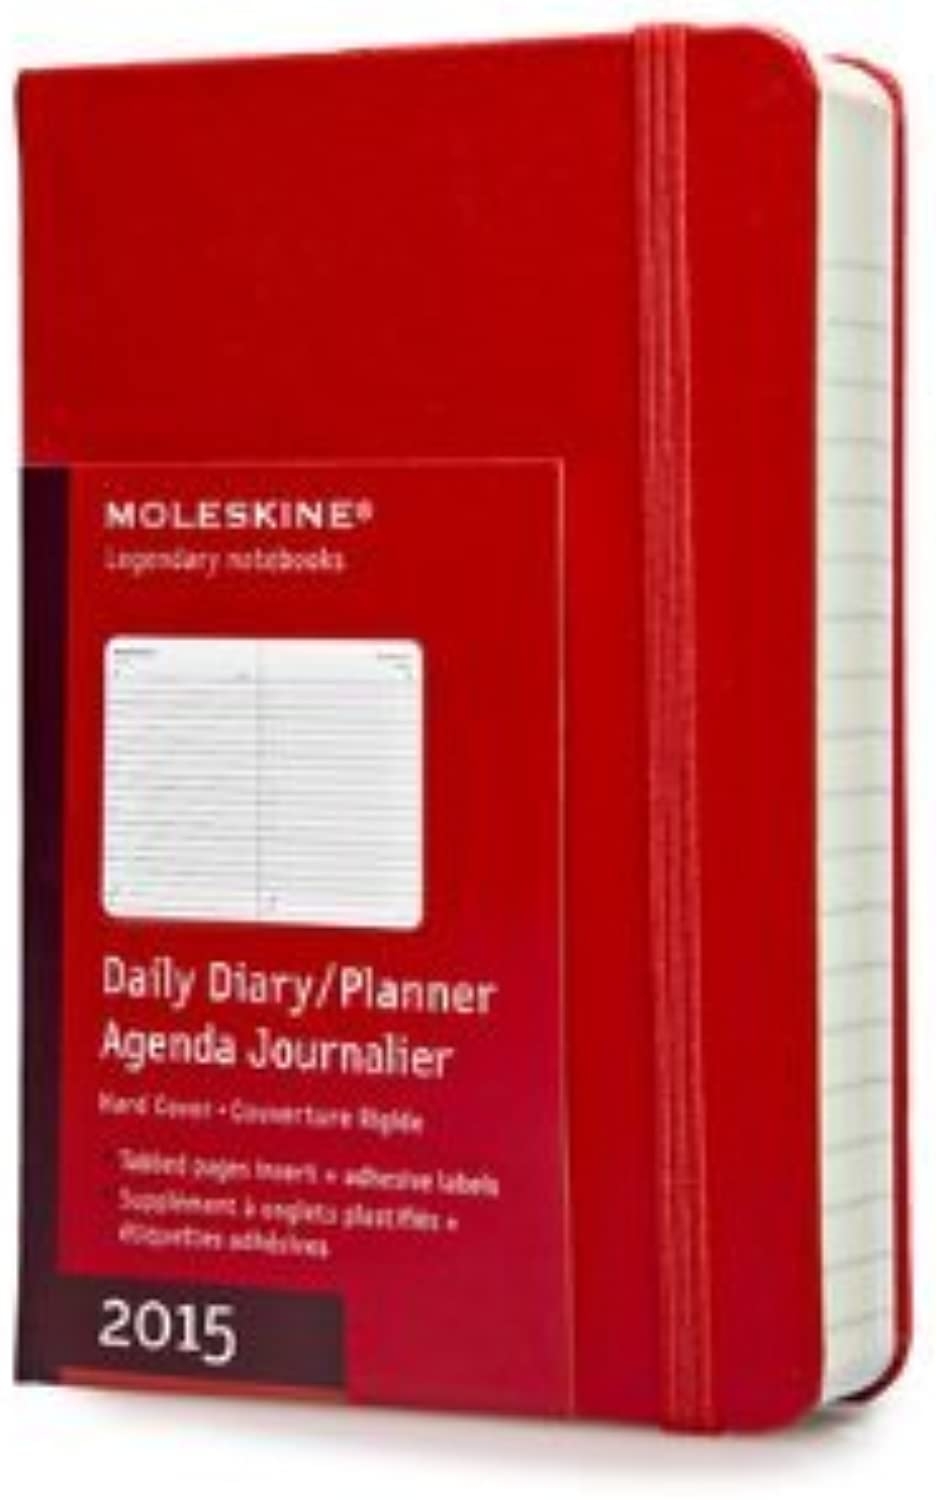 Moleskine 2015 Daily Planner, 12 Month, Pocket, rot, Hard Cover (3.5 x 5.5) (Moleskine Diaries) by Moleskine(2014-05-20) B00PJPEARK | Sale